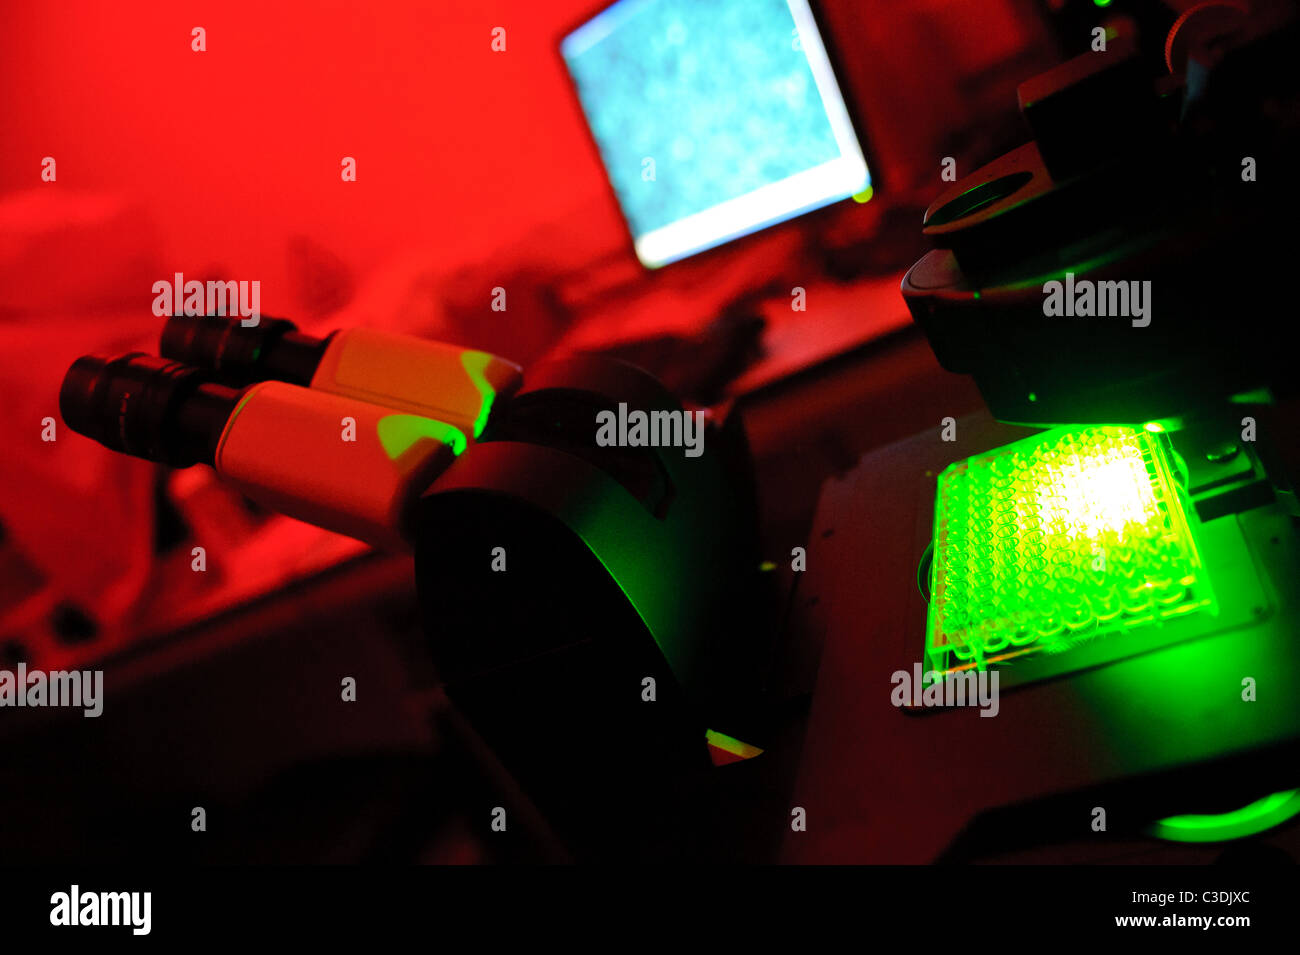 microscope in darkroom lit bright red with computer screen in background and green and blue lights test tubes - Stock Image